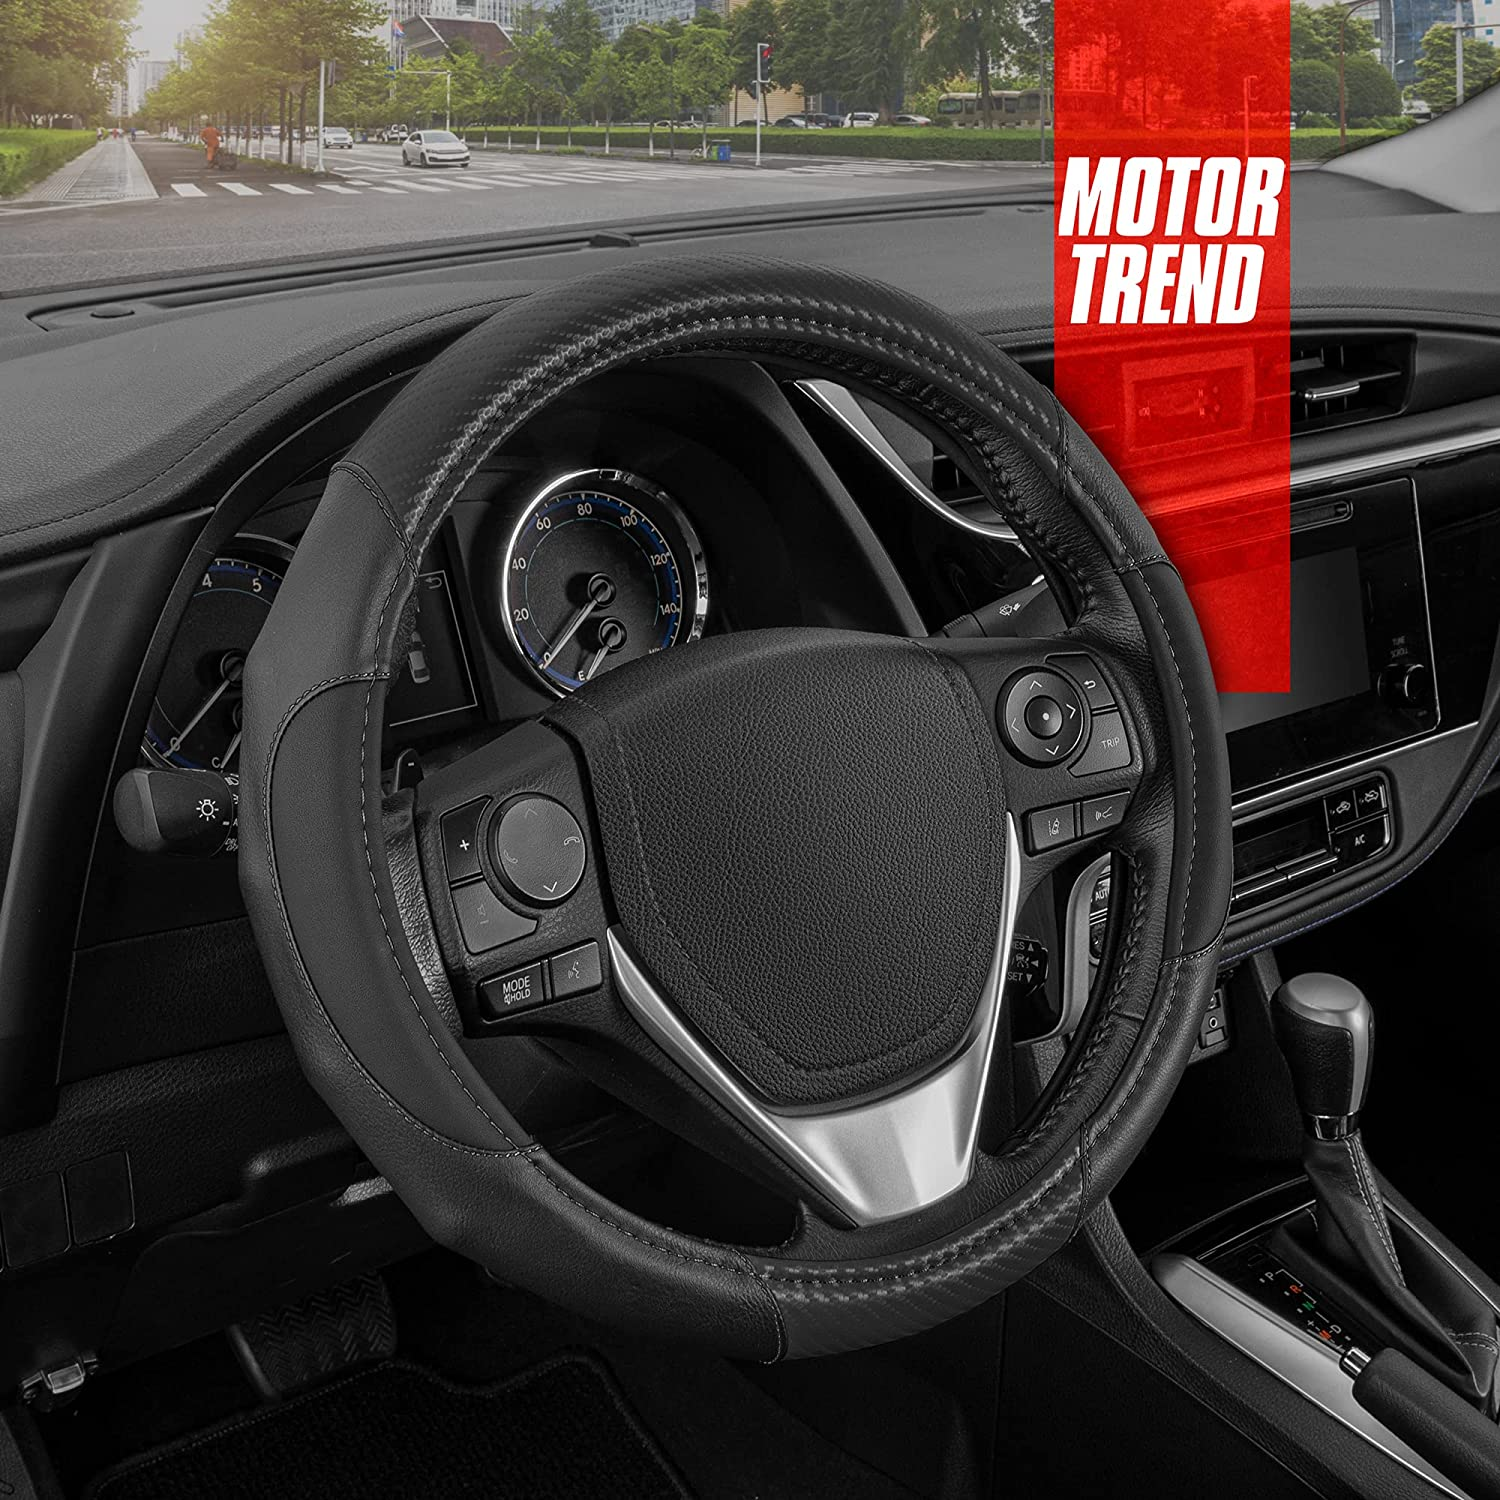 Motor Trend GripDrive Faux Leather Steering Wheel Cover with Black Carbon Fiber Accent – Universal Fit Black Steering Wheel Cover for Car Truck Van SUV, 14.5-15.5 Diameter